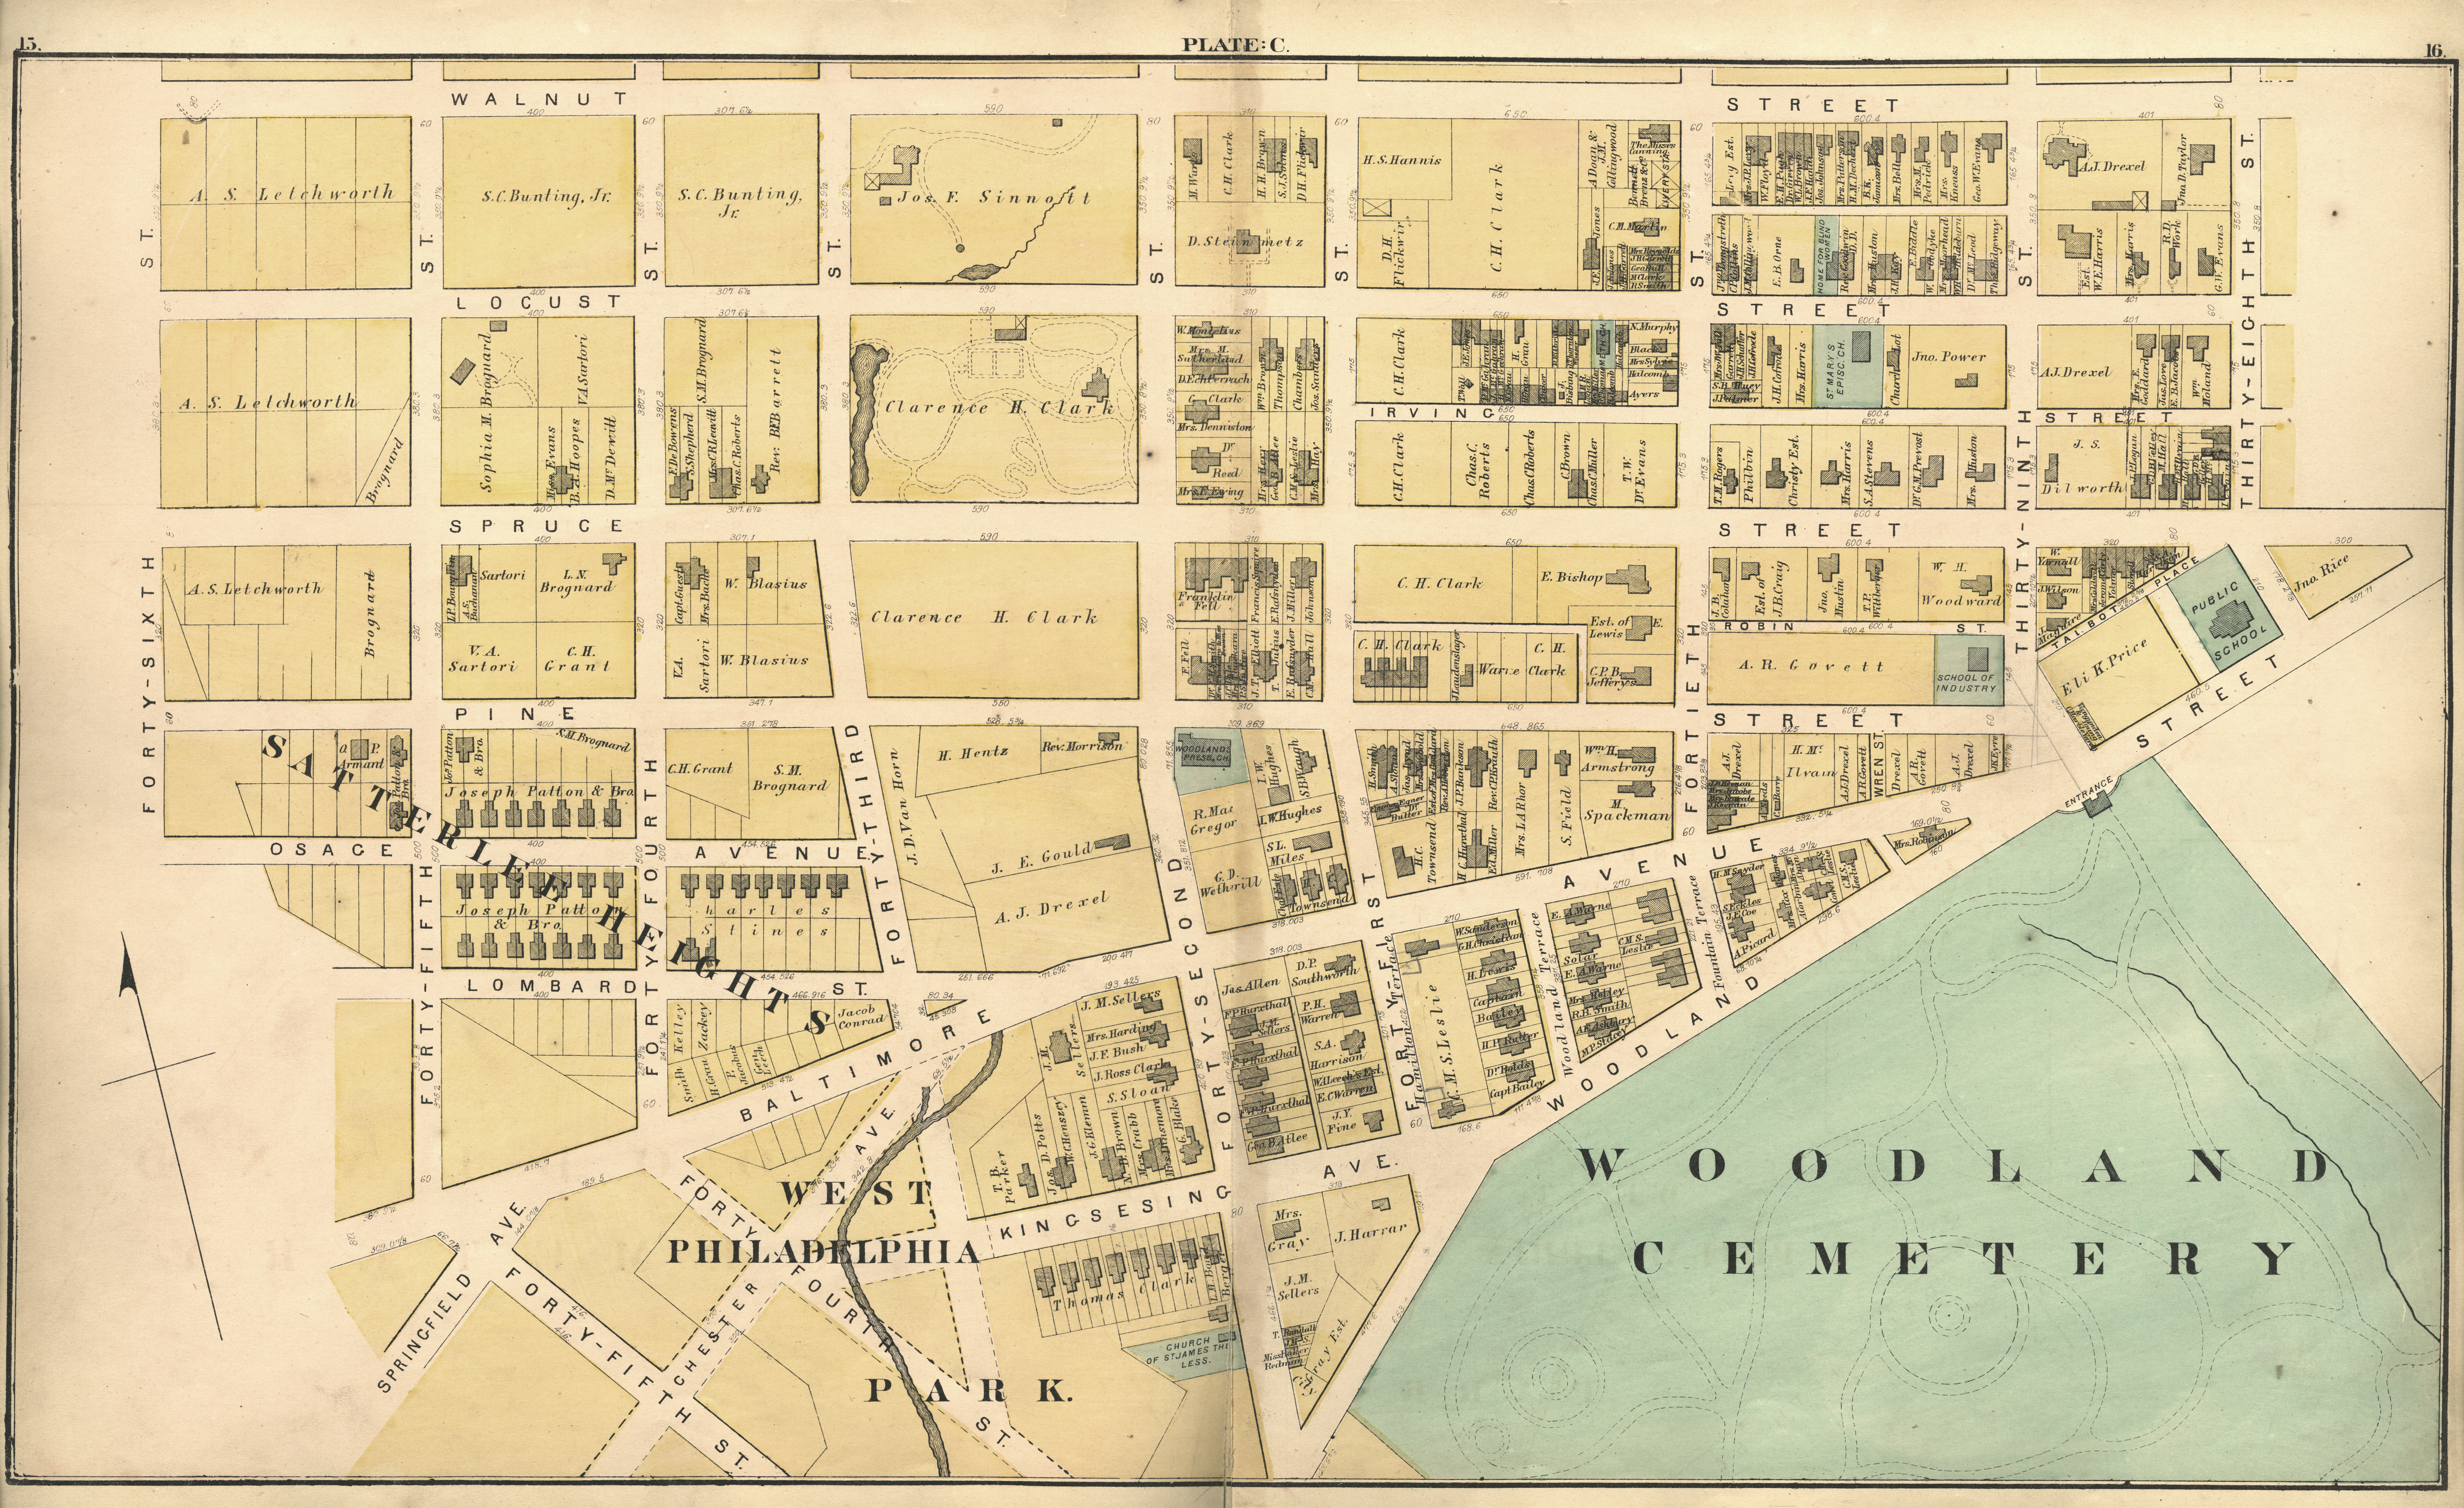 1872 Atlas of the 24th and 27th Wards, West Philadelphia - Plate C